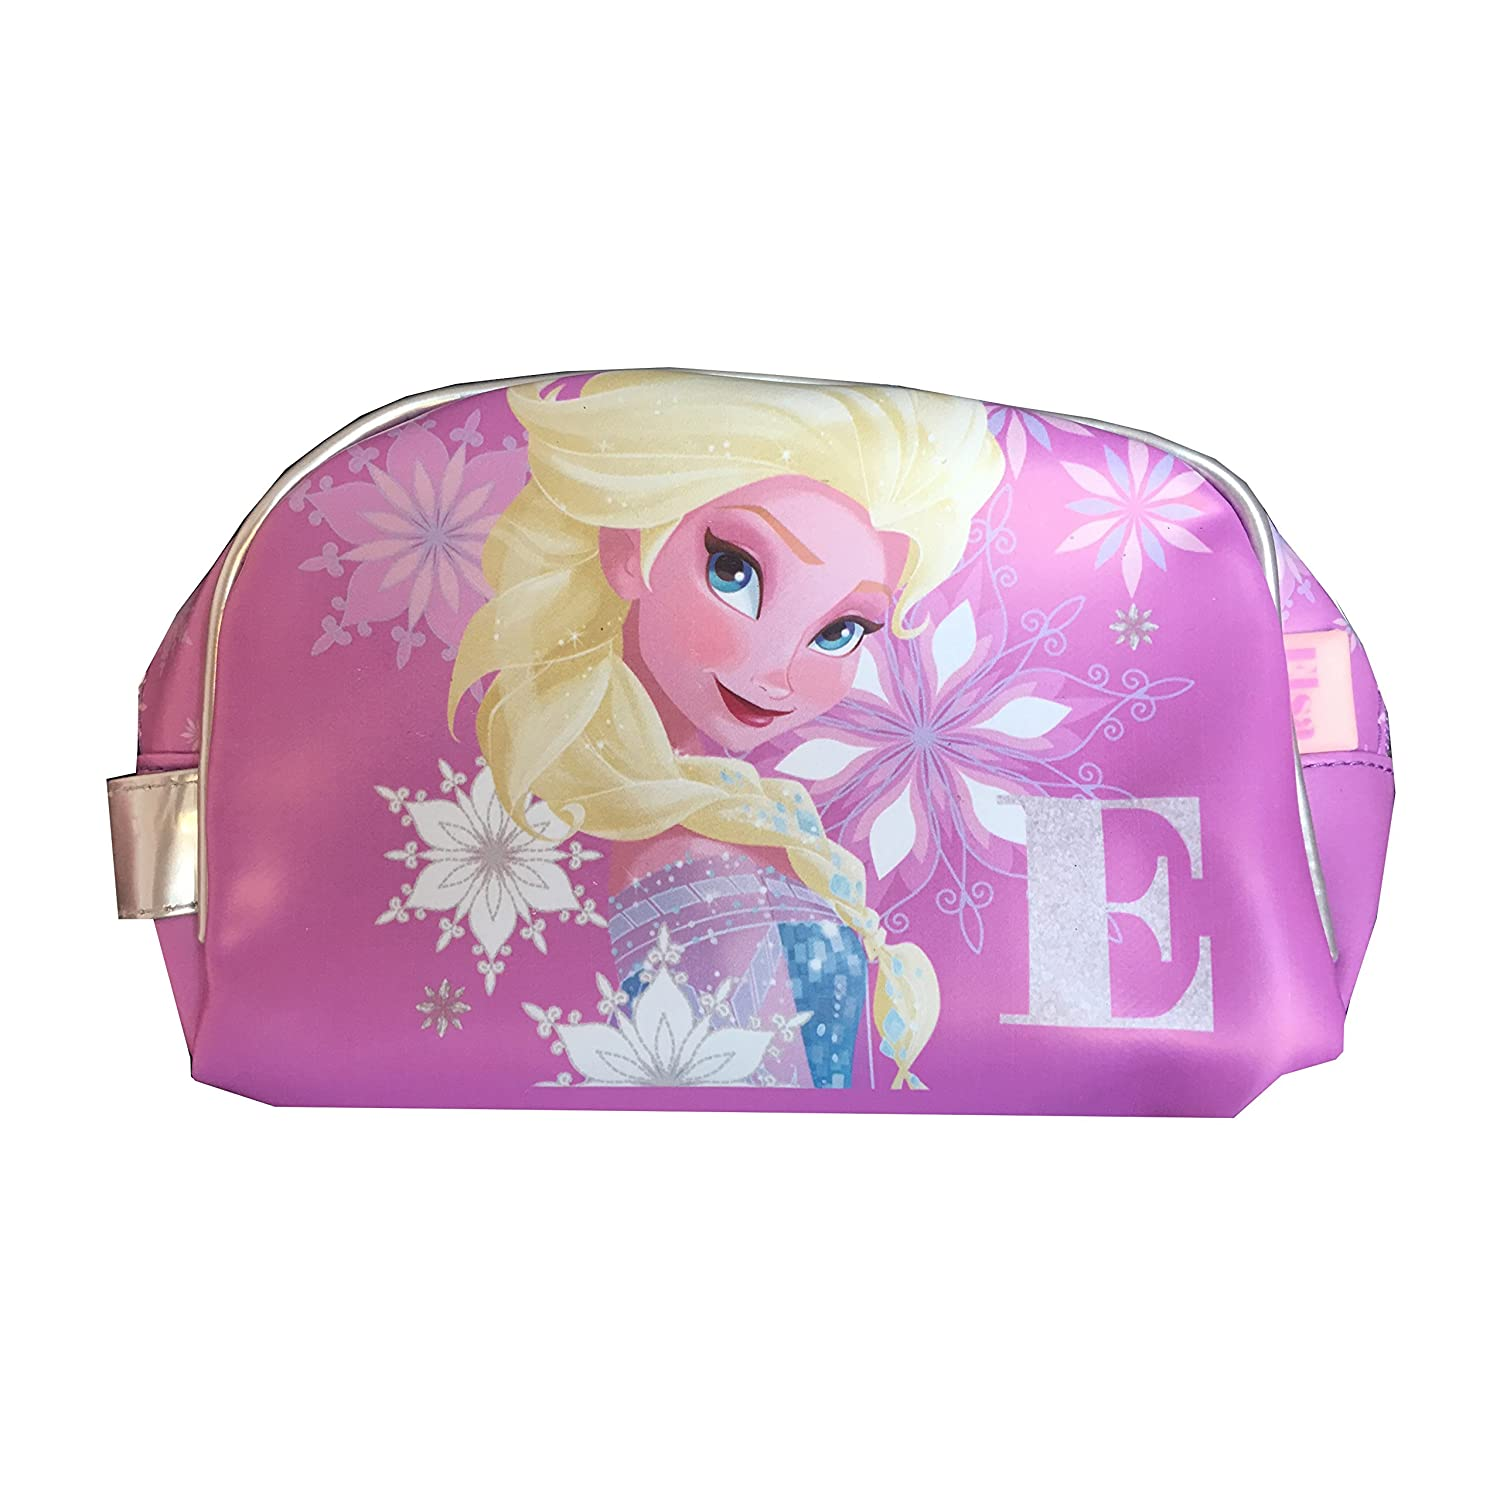 Disney Frozen - Toiletry Bag Elsa